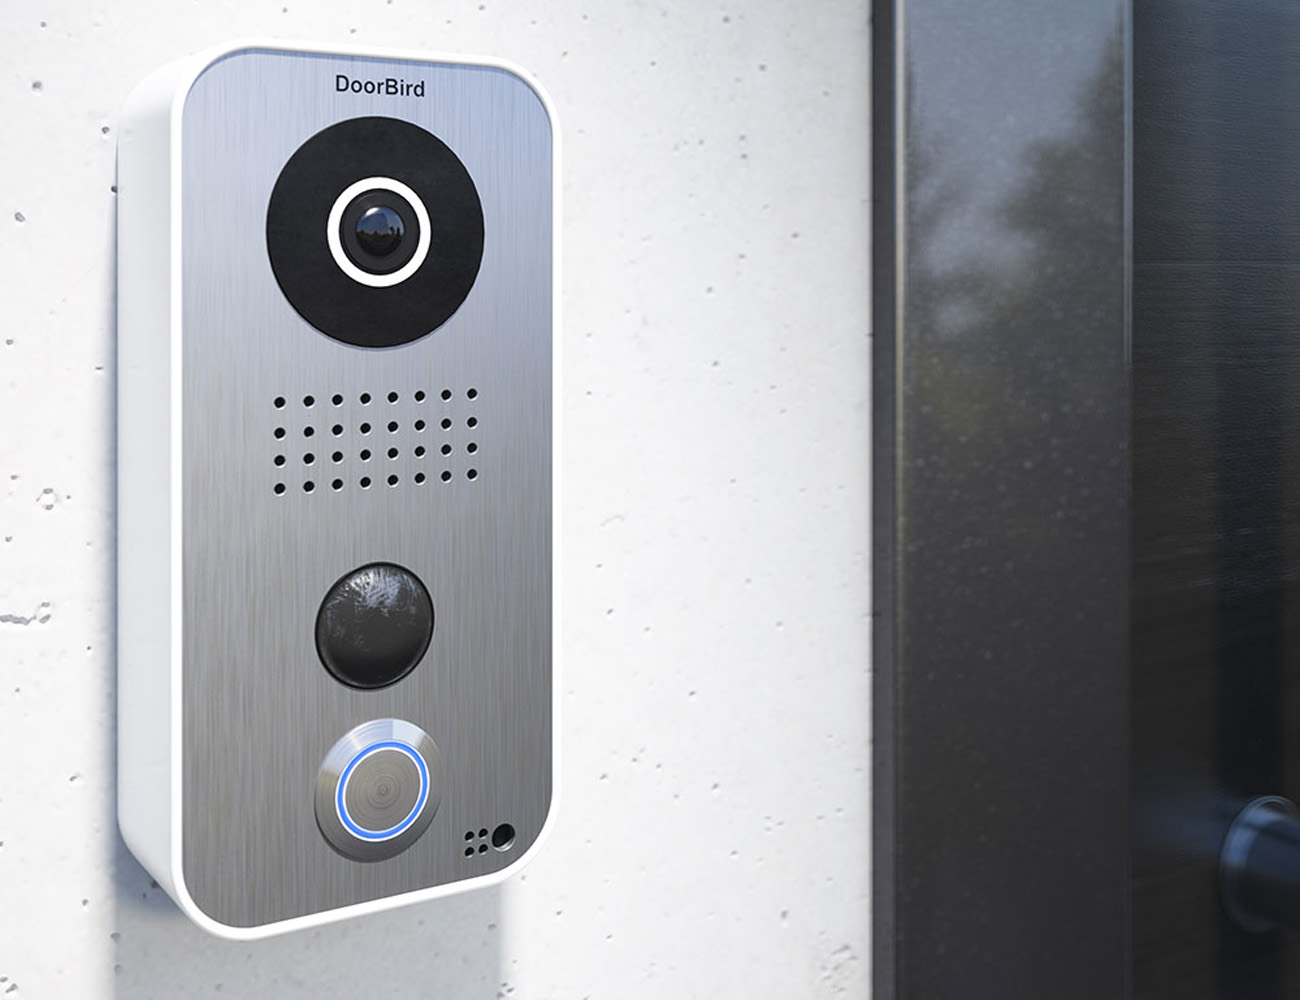 smart home elan doorbird intercom camera safety security